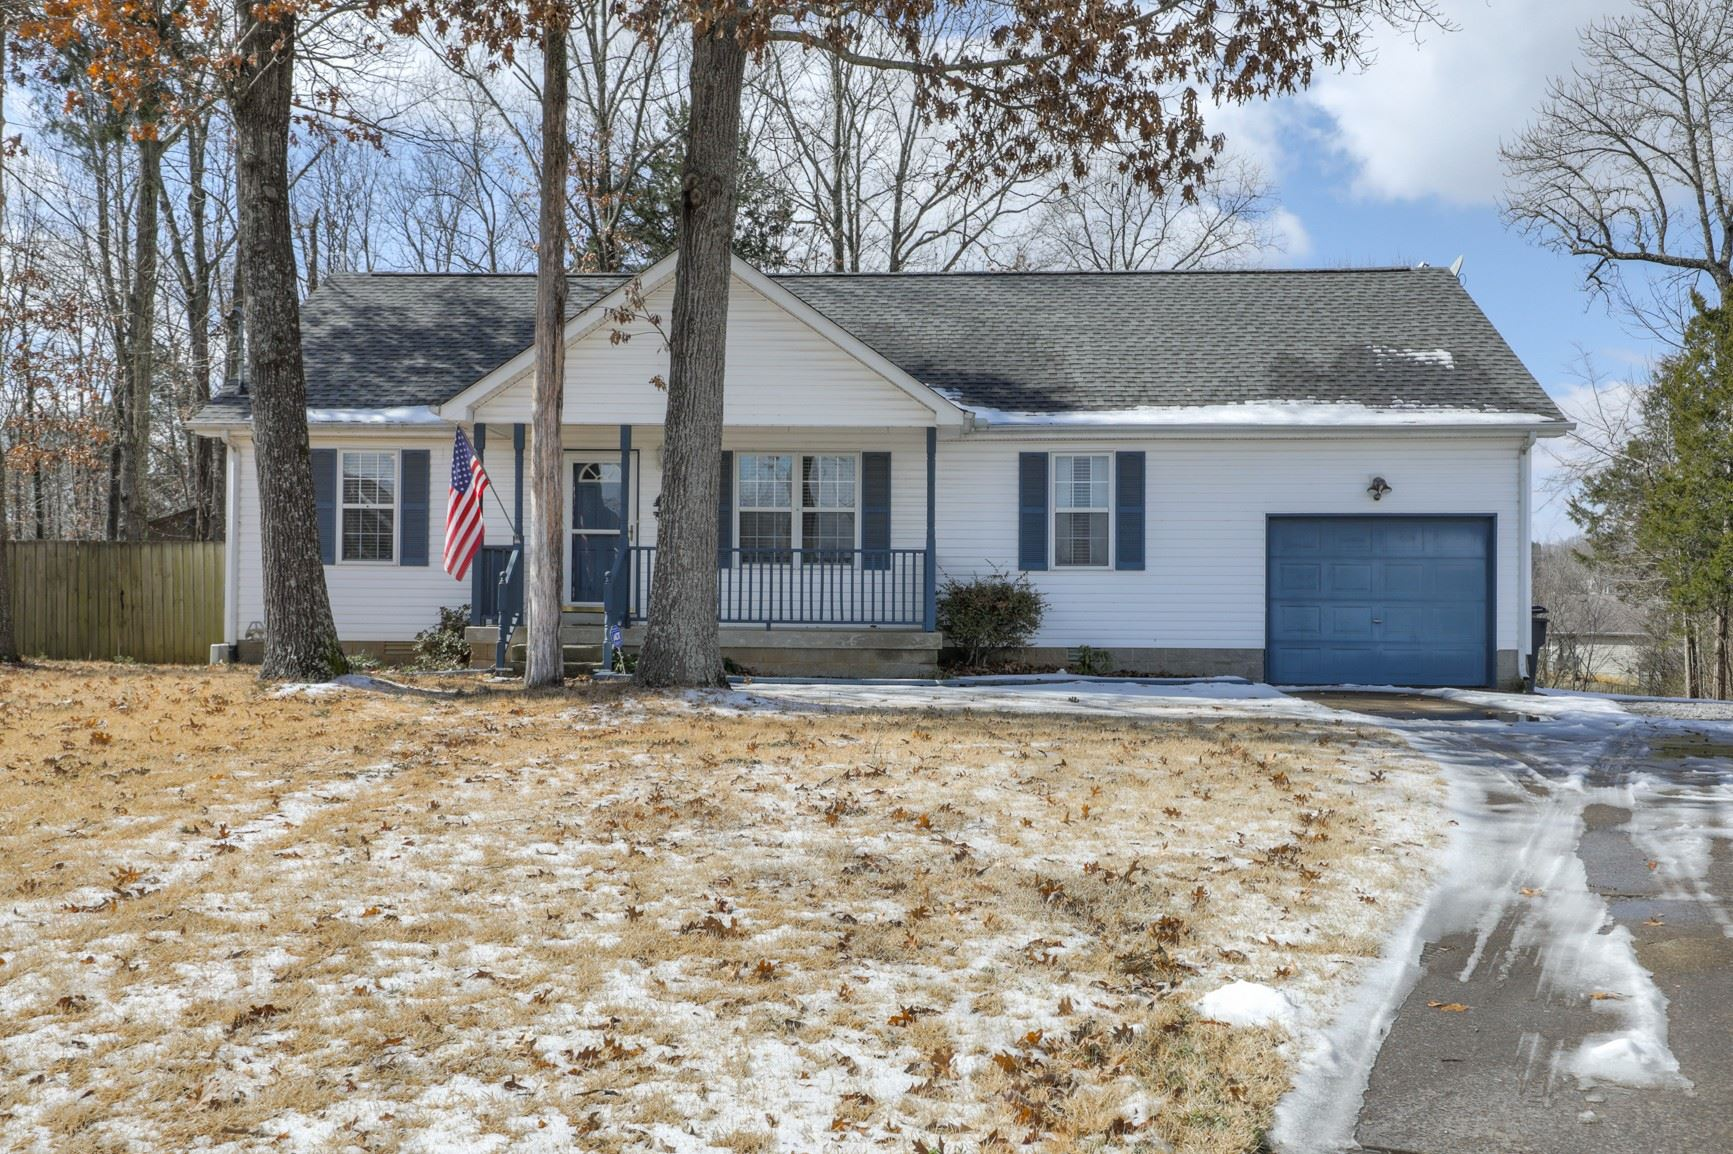 1204 Welsh Dr, La Vergne, TN 37086 - MLS#: 2251213